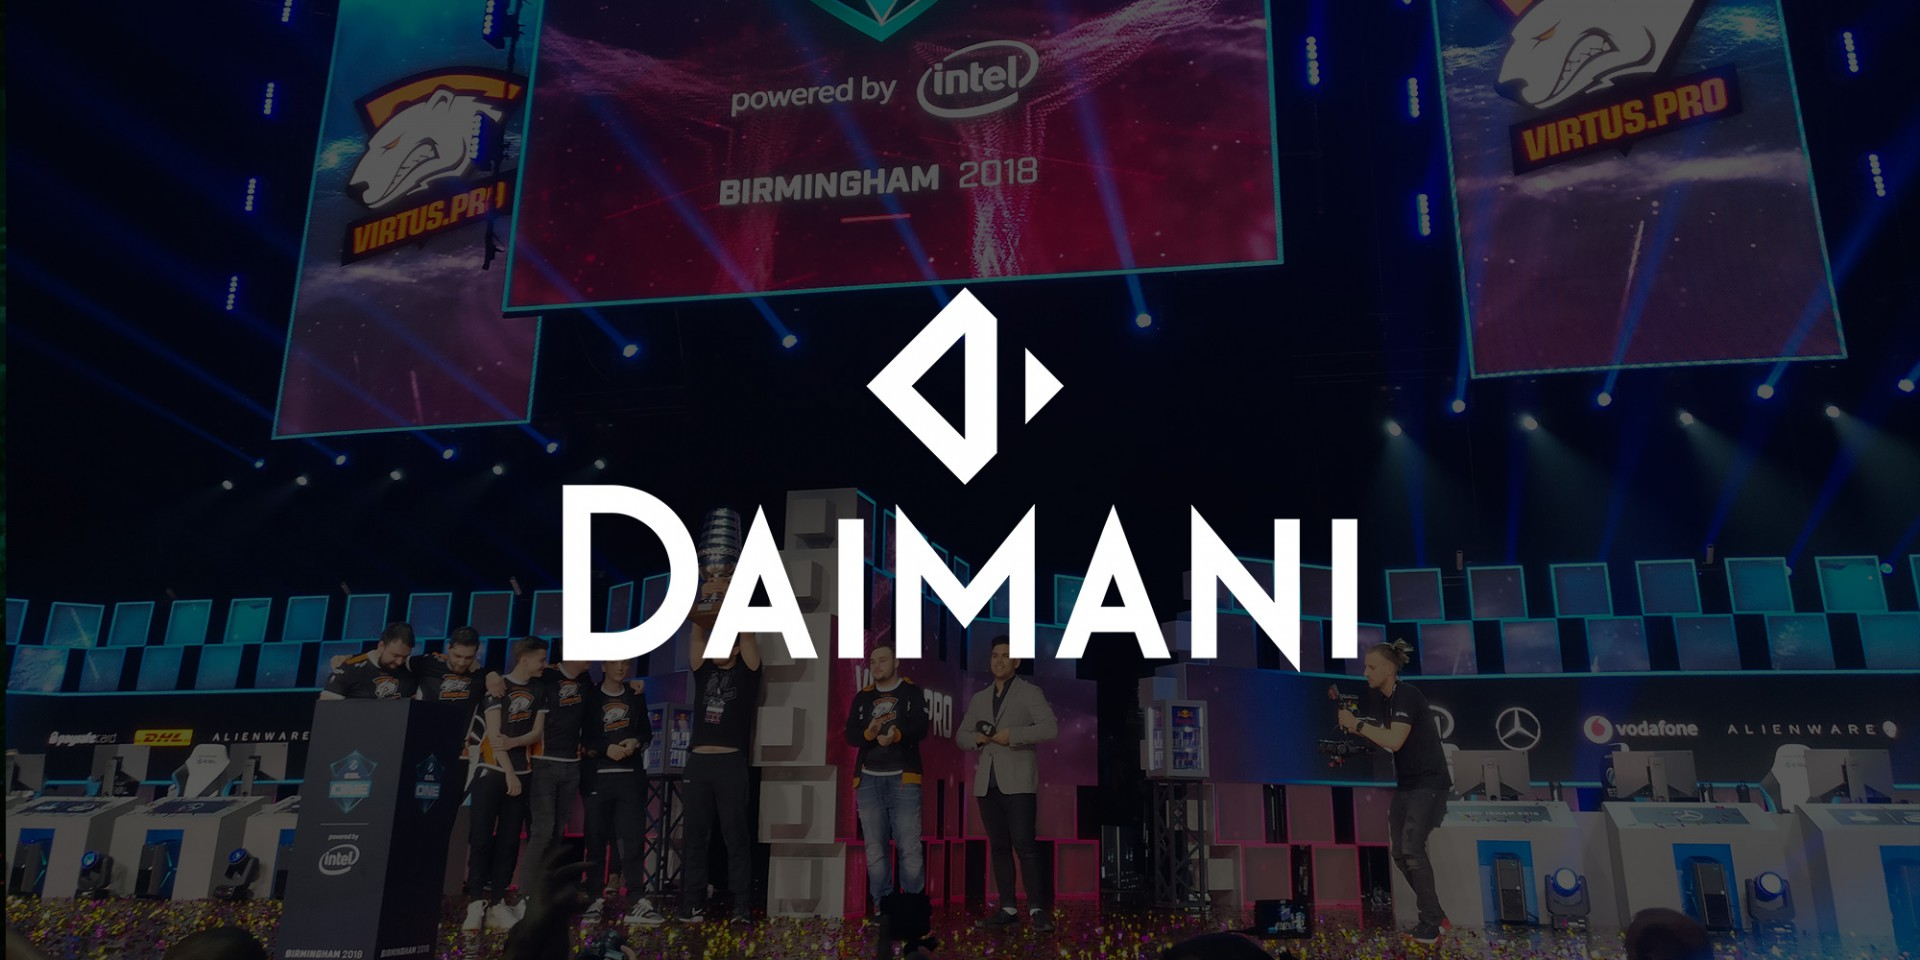 DAIMANI partners with ESL to provide premium hospitality packages - Esports Insider thumbnail